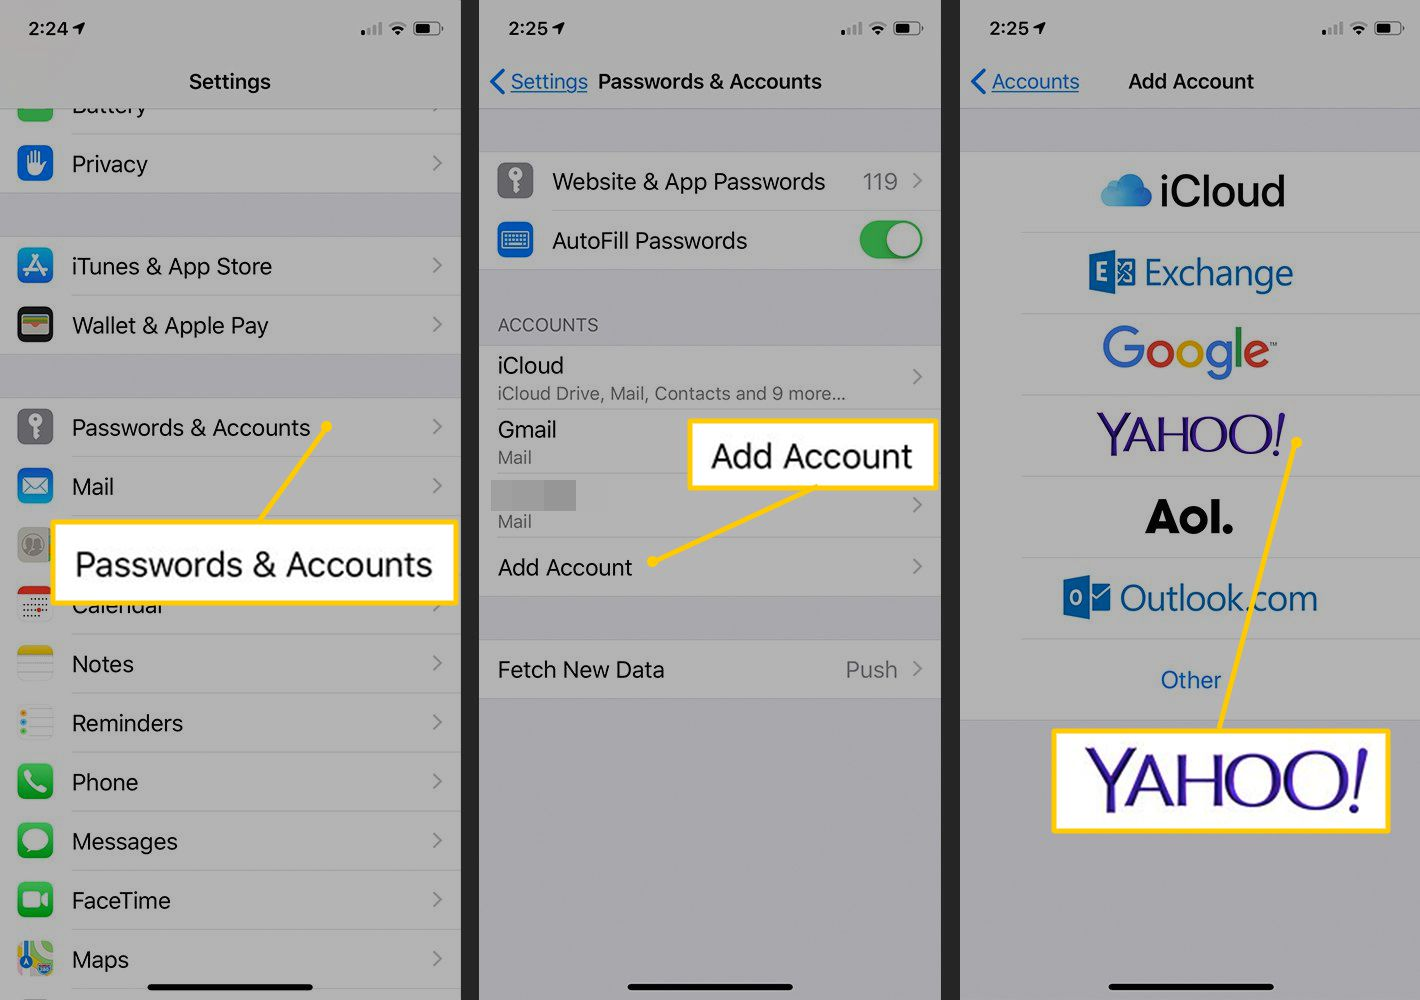 How to Access a Yahoo Mail Account in iPhone Mail